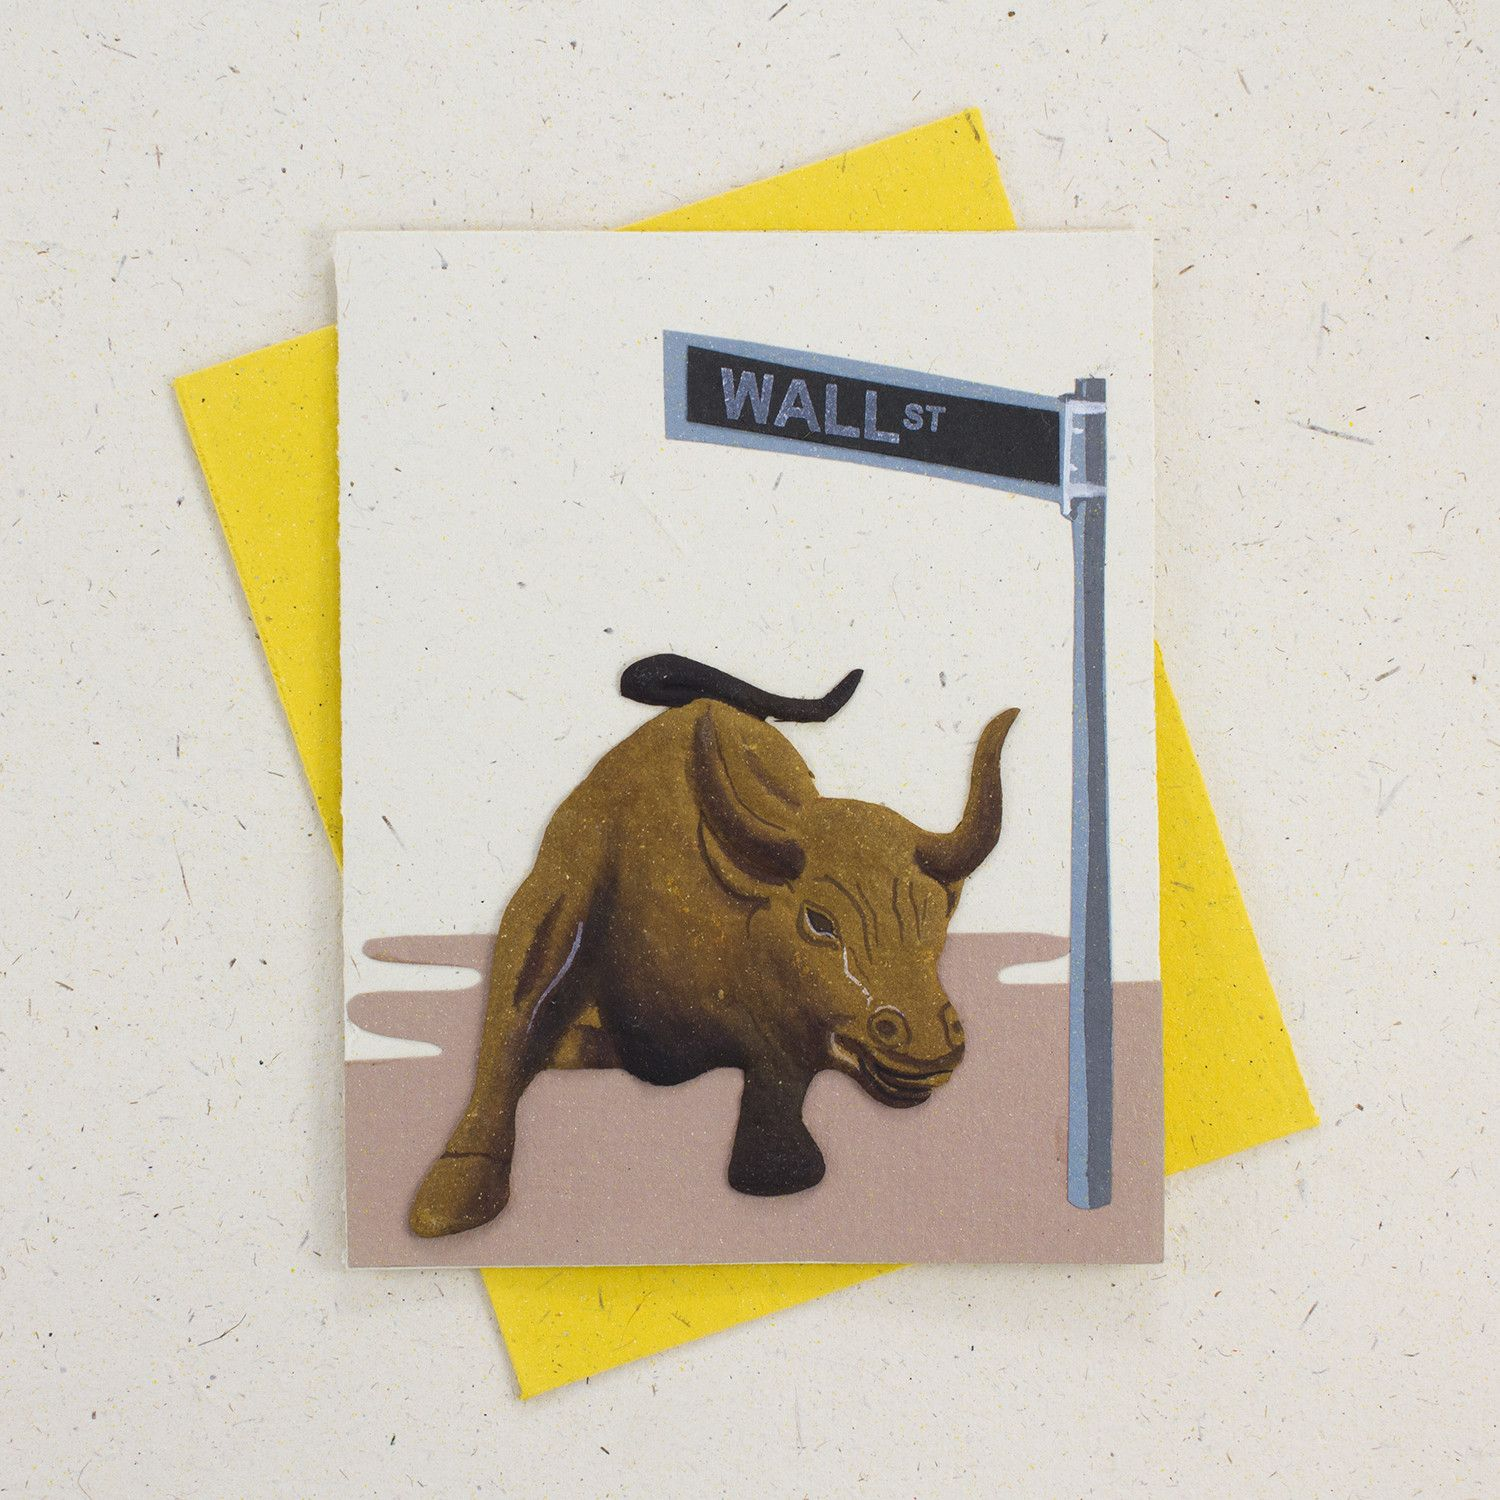 100 recycled wall street greeting card mr ellie pooh 100 recycled wall street greeting card mr ellie pooh stationary made of 30 fiber from elephant dung and 70 post consumer paper cards are m4hsunfo